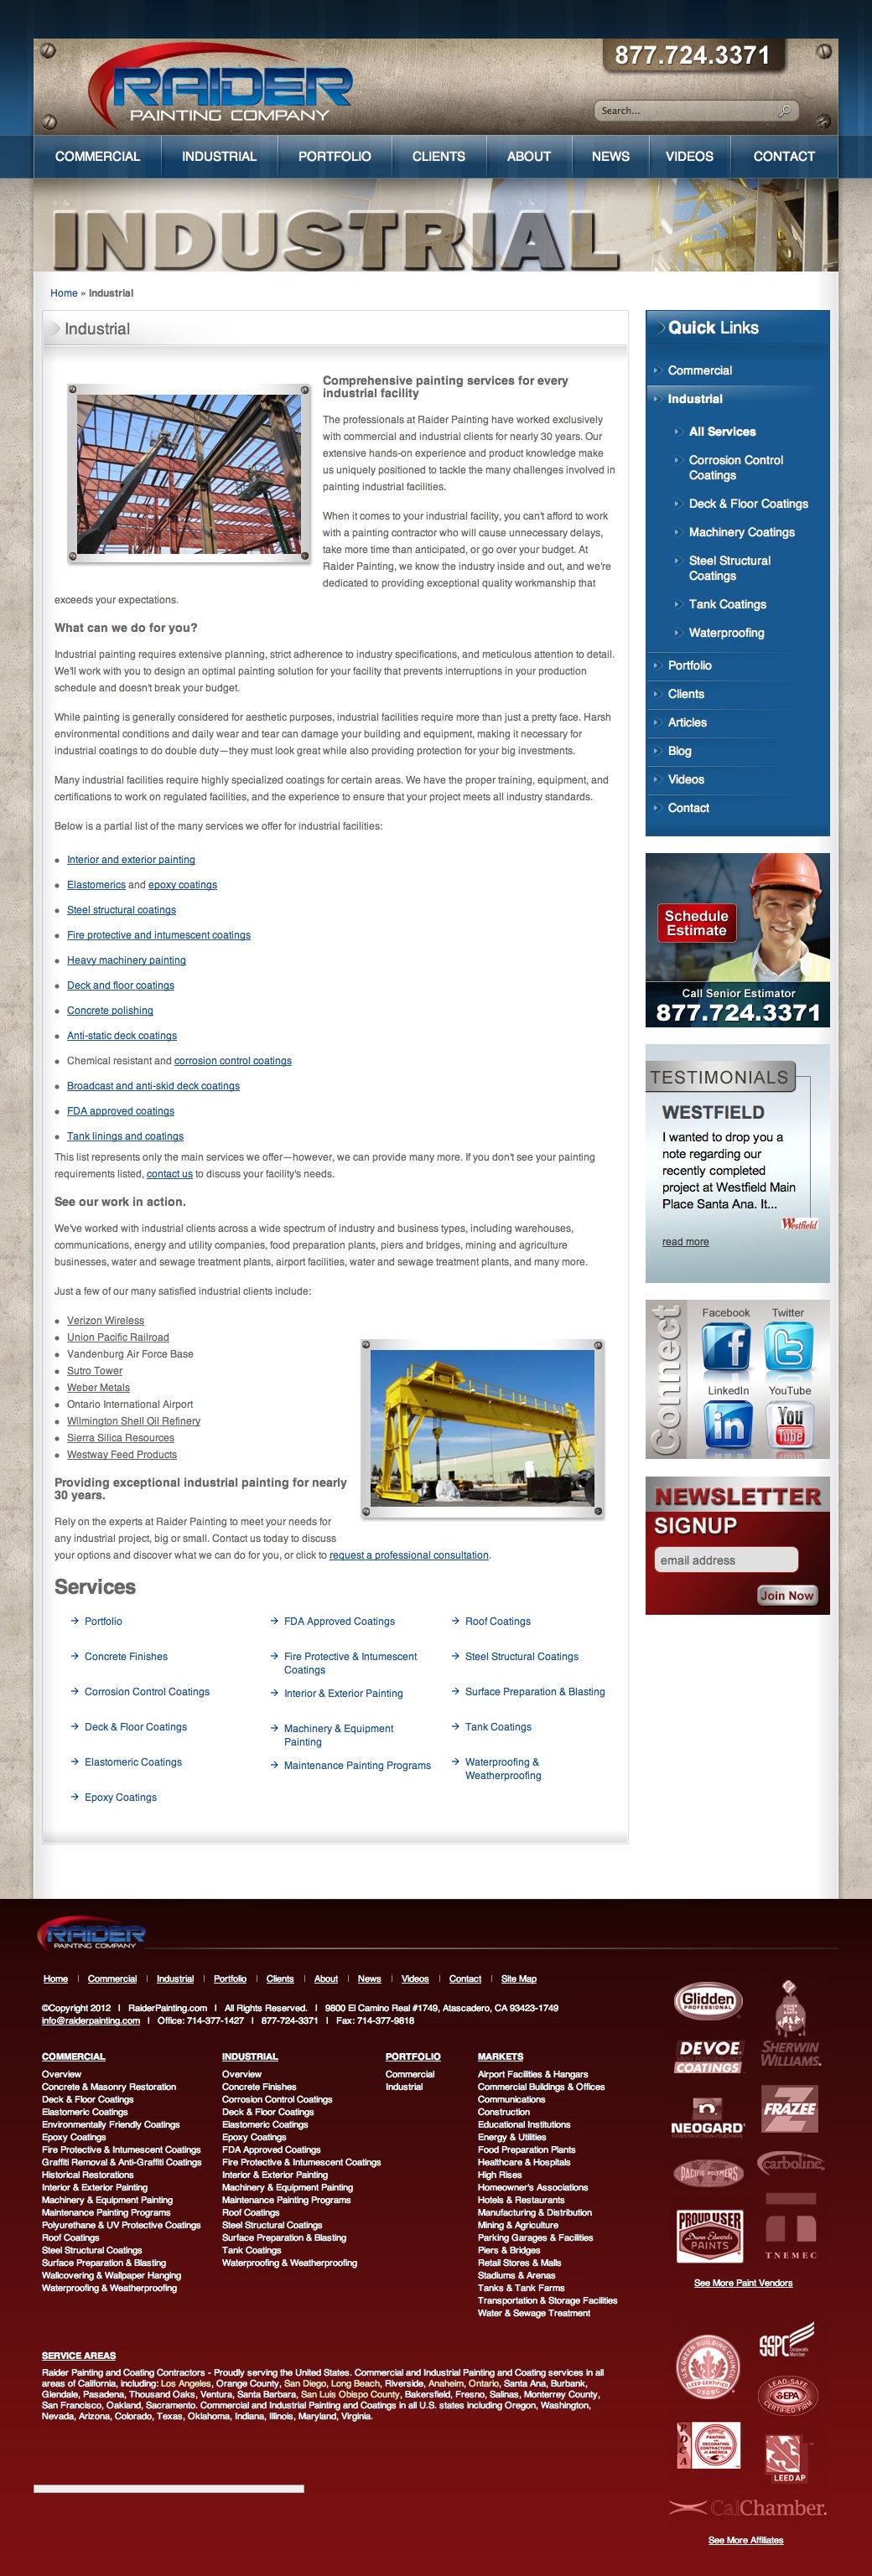 Web Copy: Industrial Painting